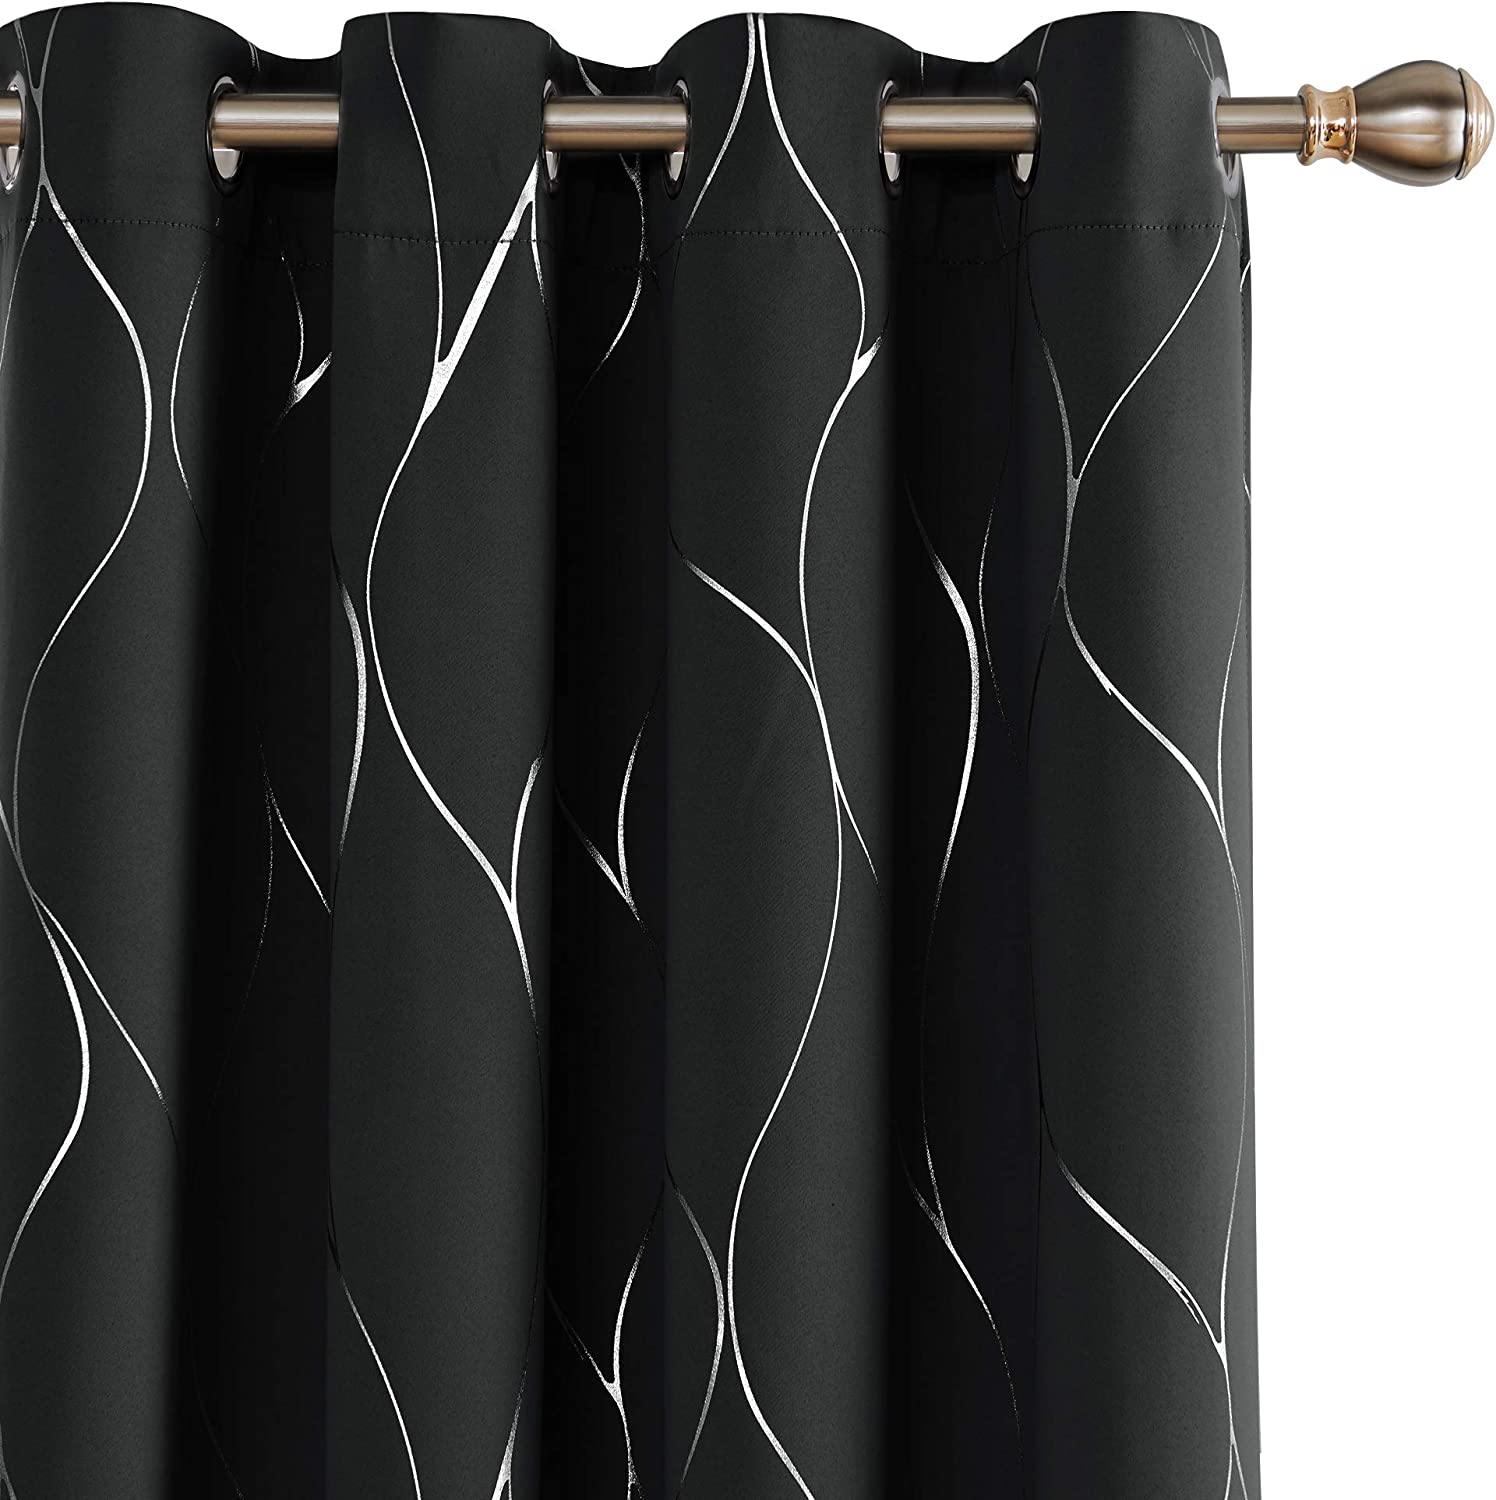 Deconovo Wave Printed Thermal Insulated Blackout Curtains Room Darkening Energy Efficient Panel Grommet Top Drapes for Glass Sliding Door 52W x 96L Inch 2 Panels Black